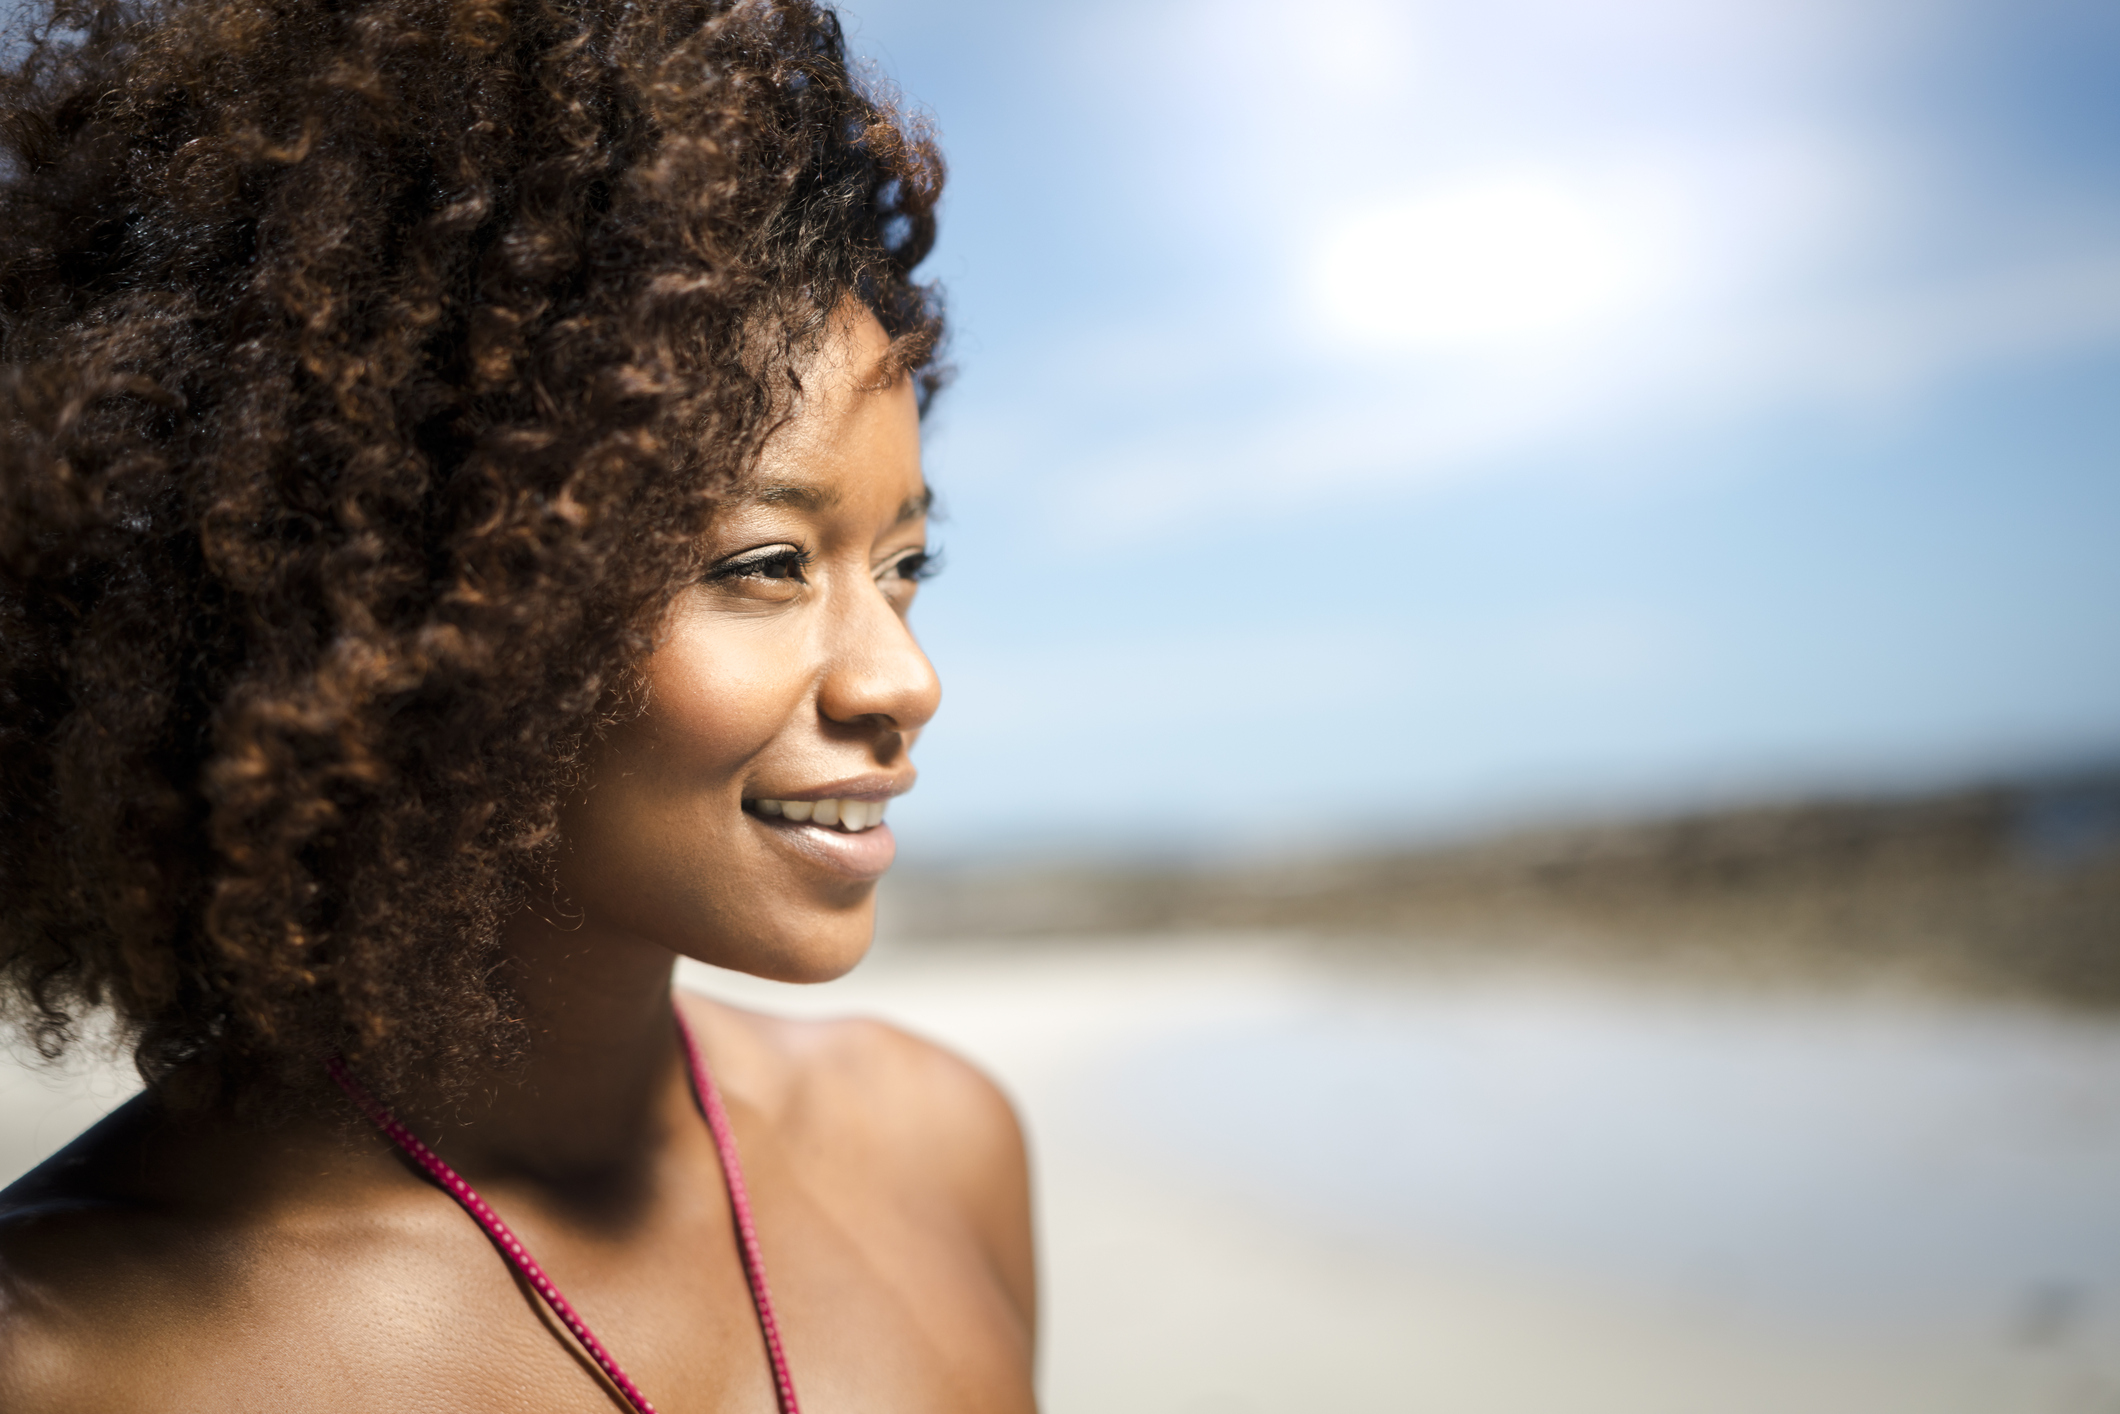 Close-up of thoughtful woman smiling at beach